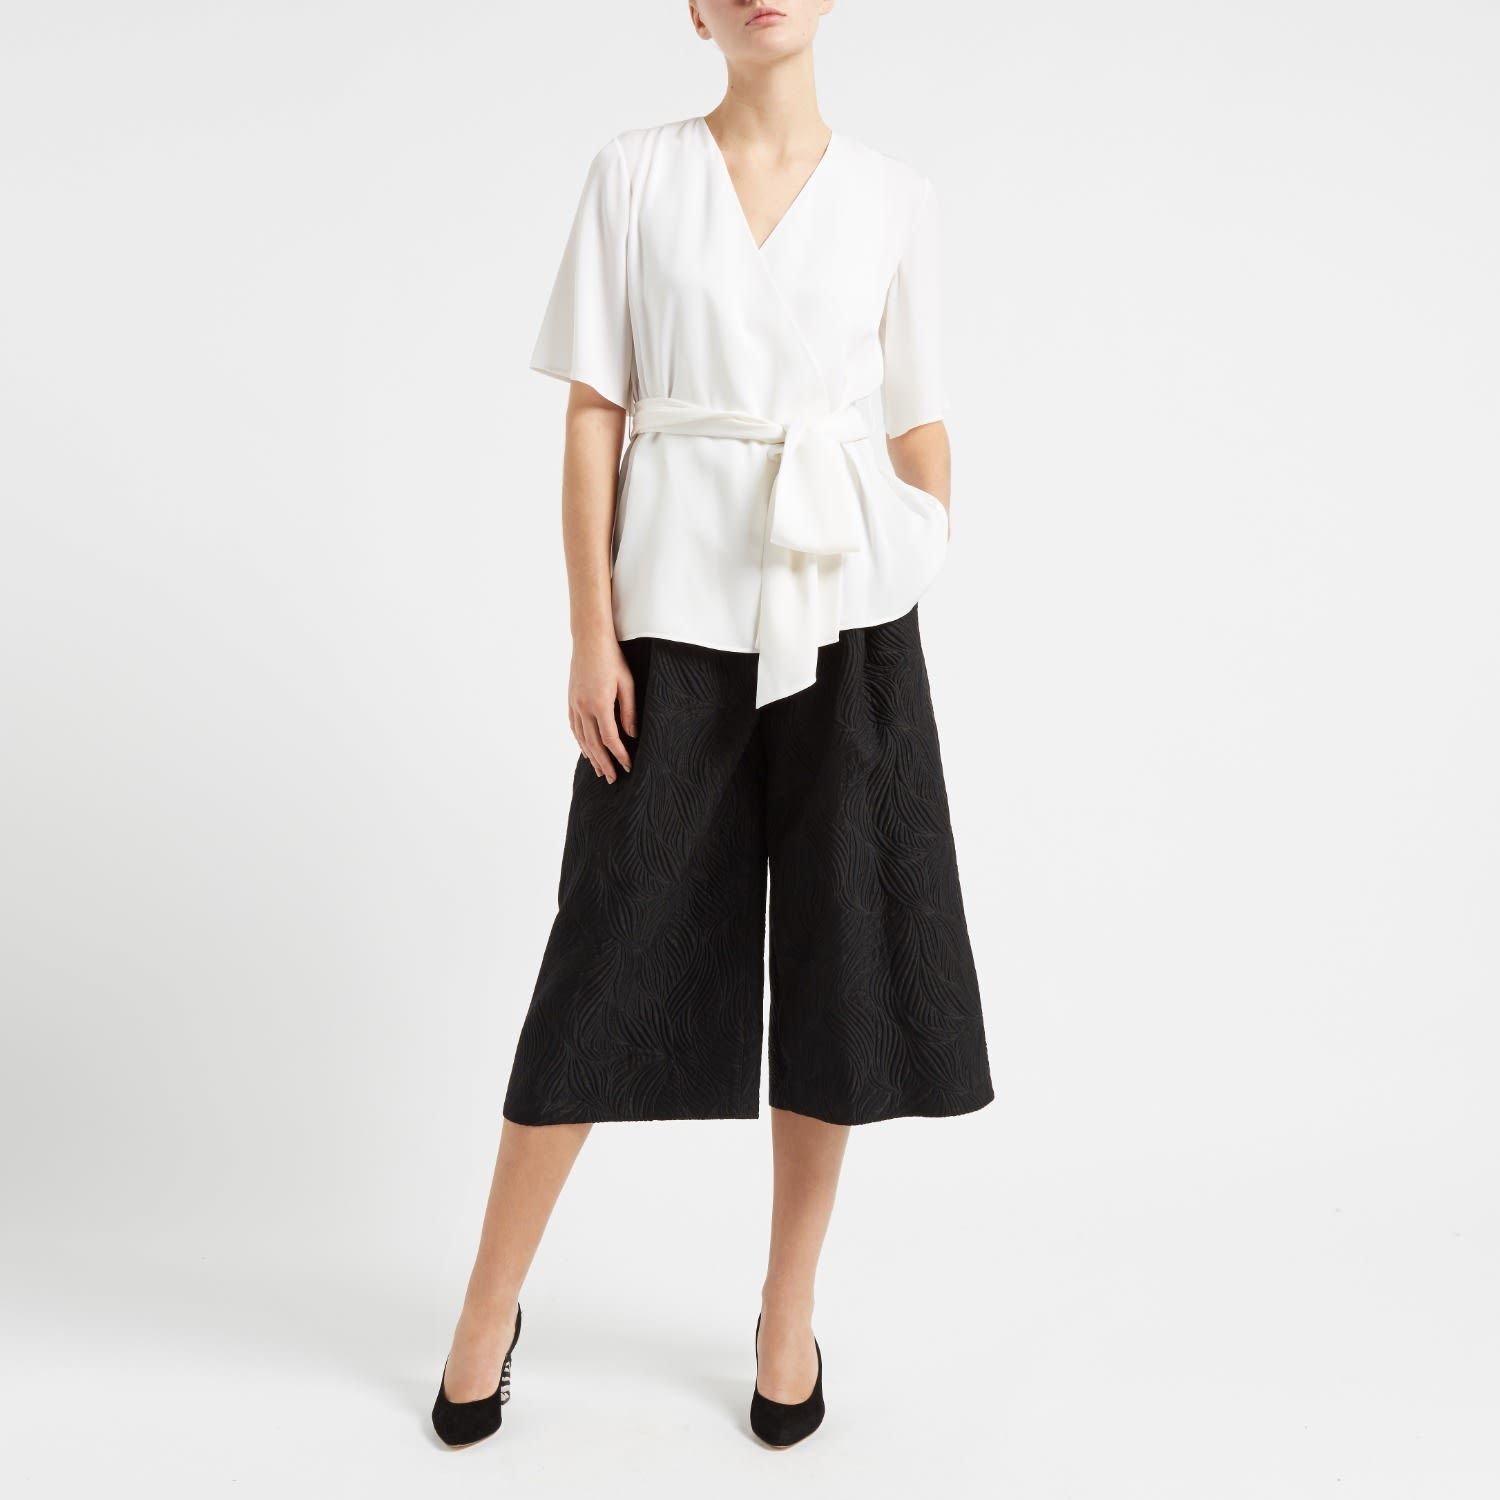 9959f7a4960ff Sonnet Belted Silk Wrap Top White image